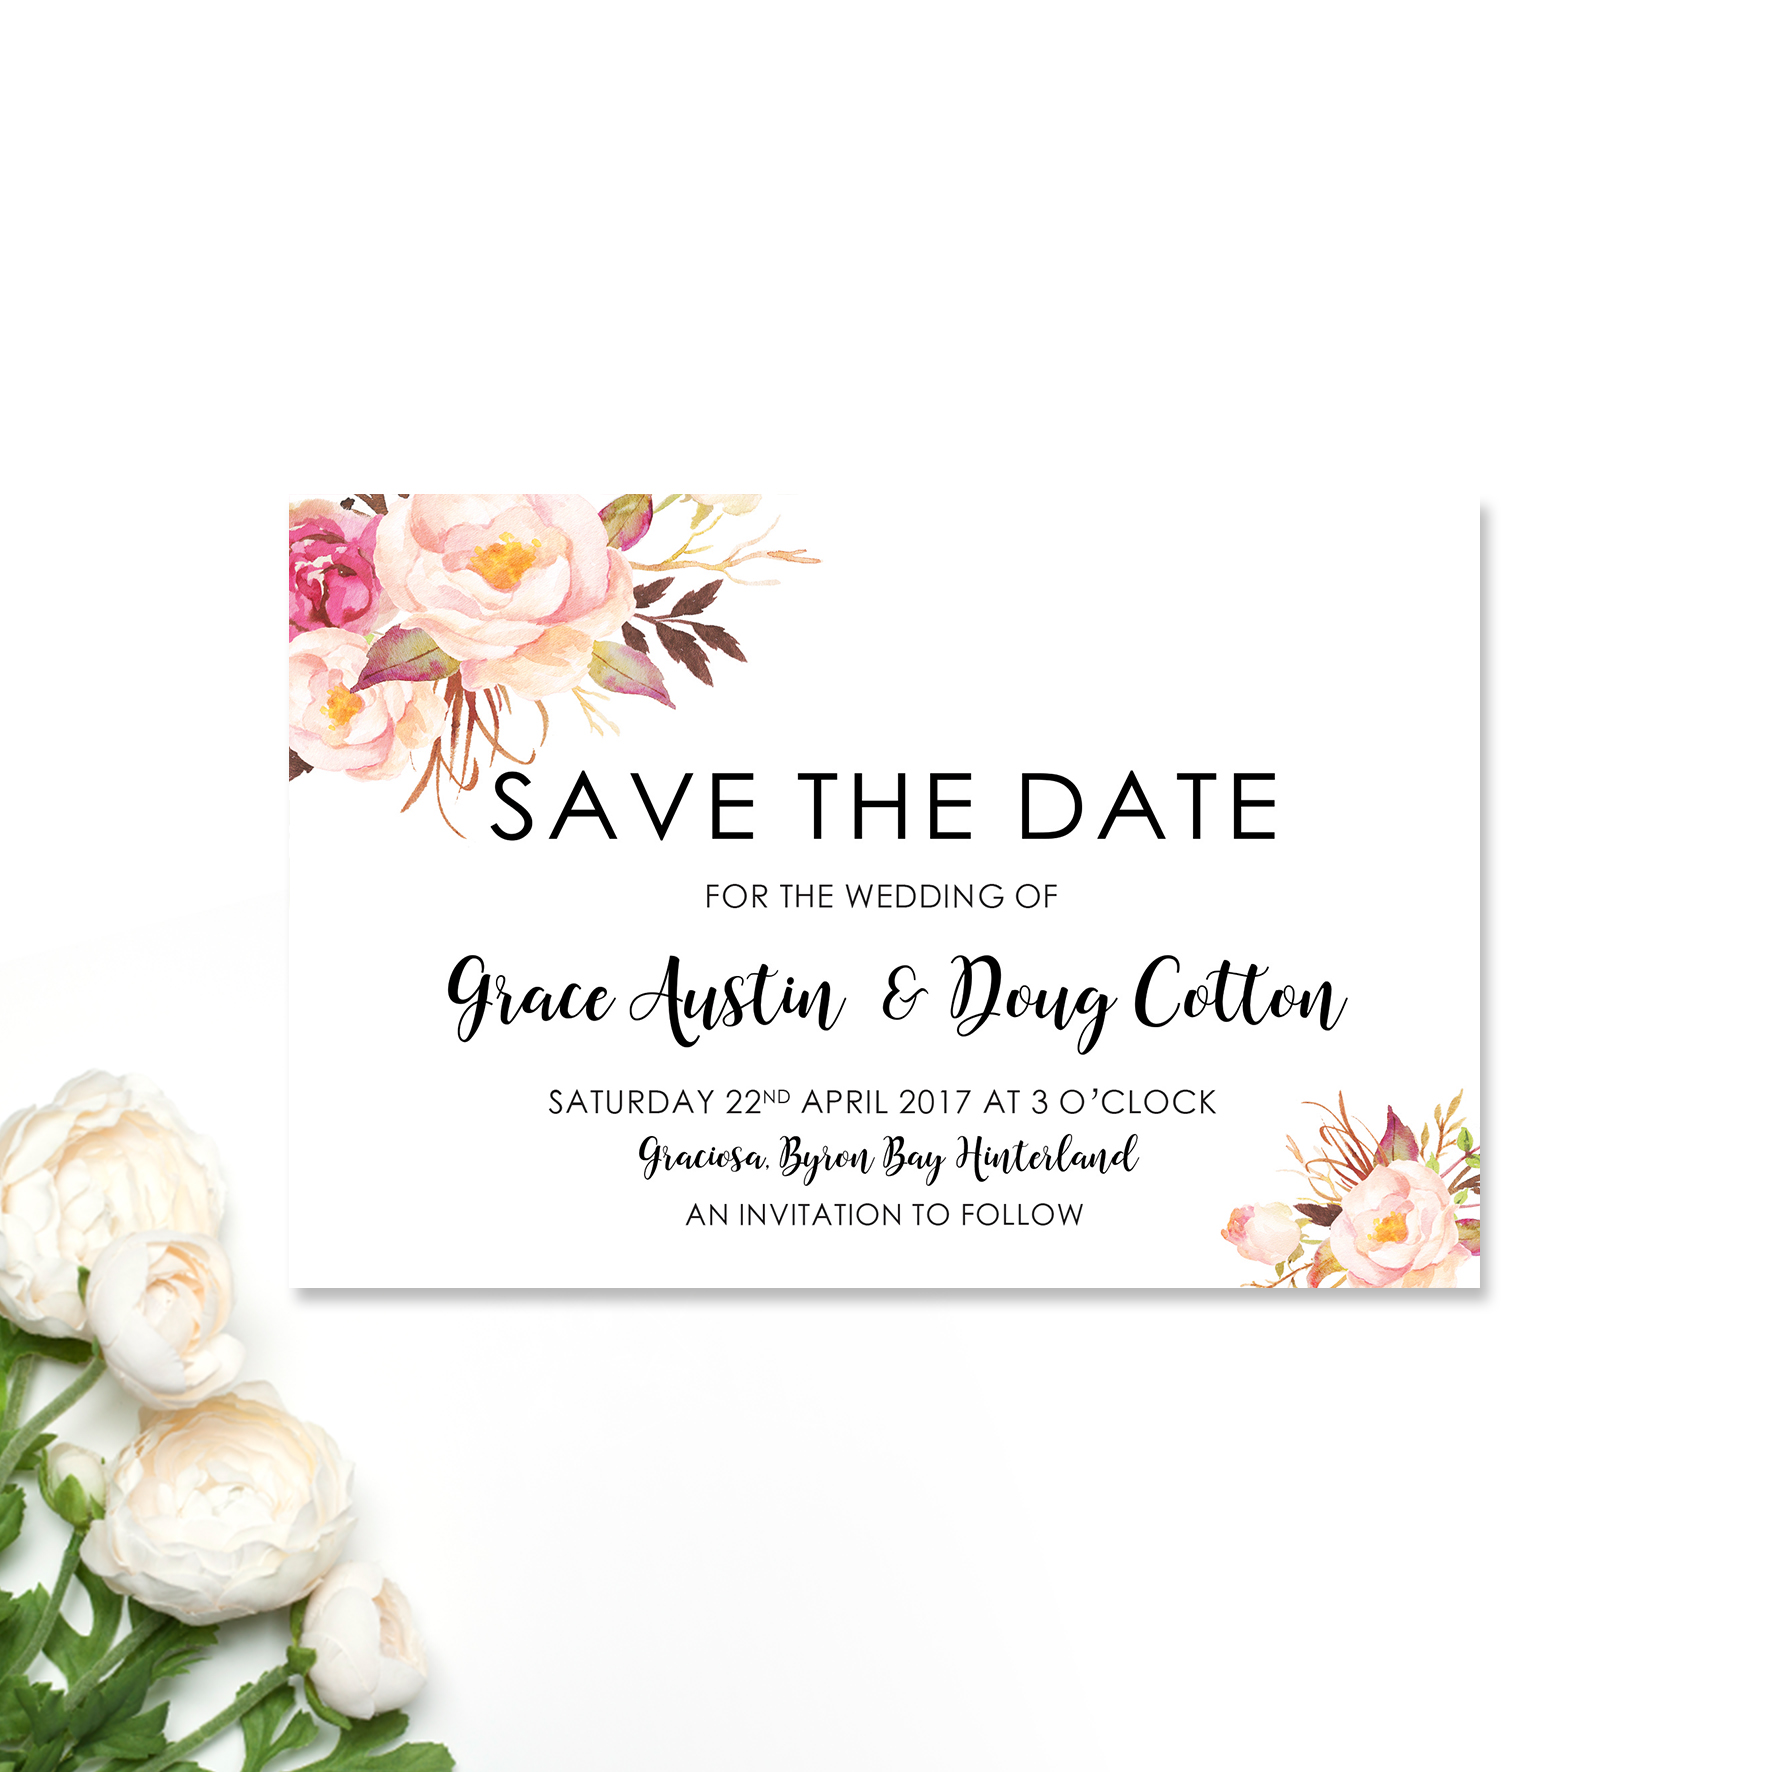 Grace + Doug Save the Date Card